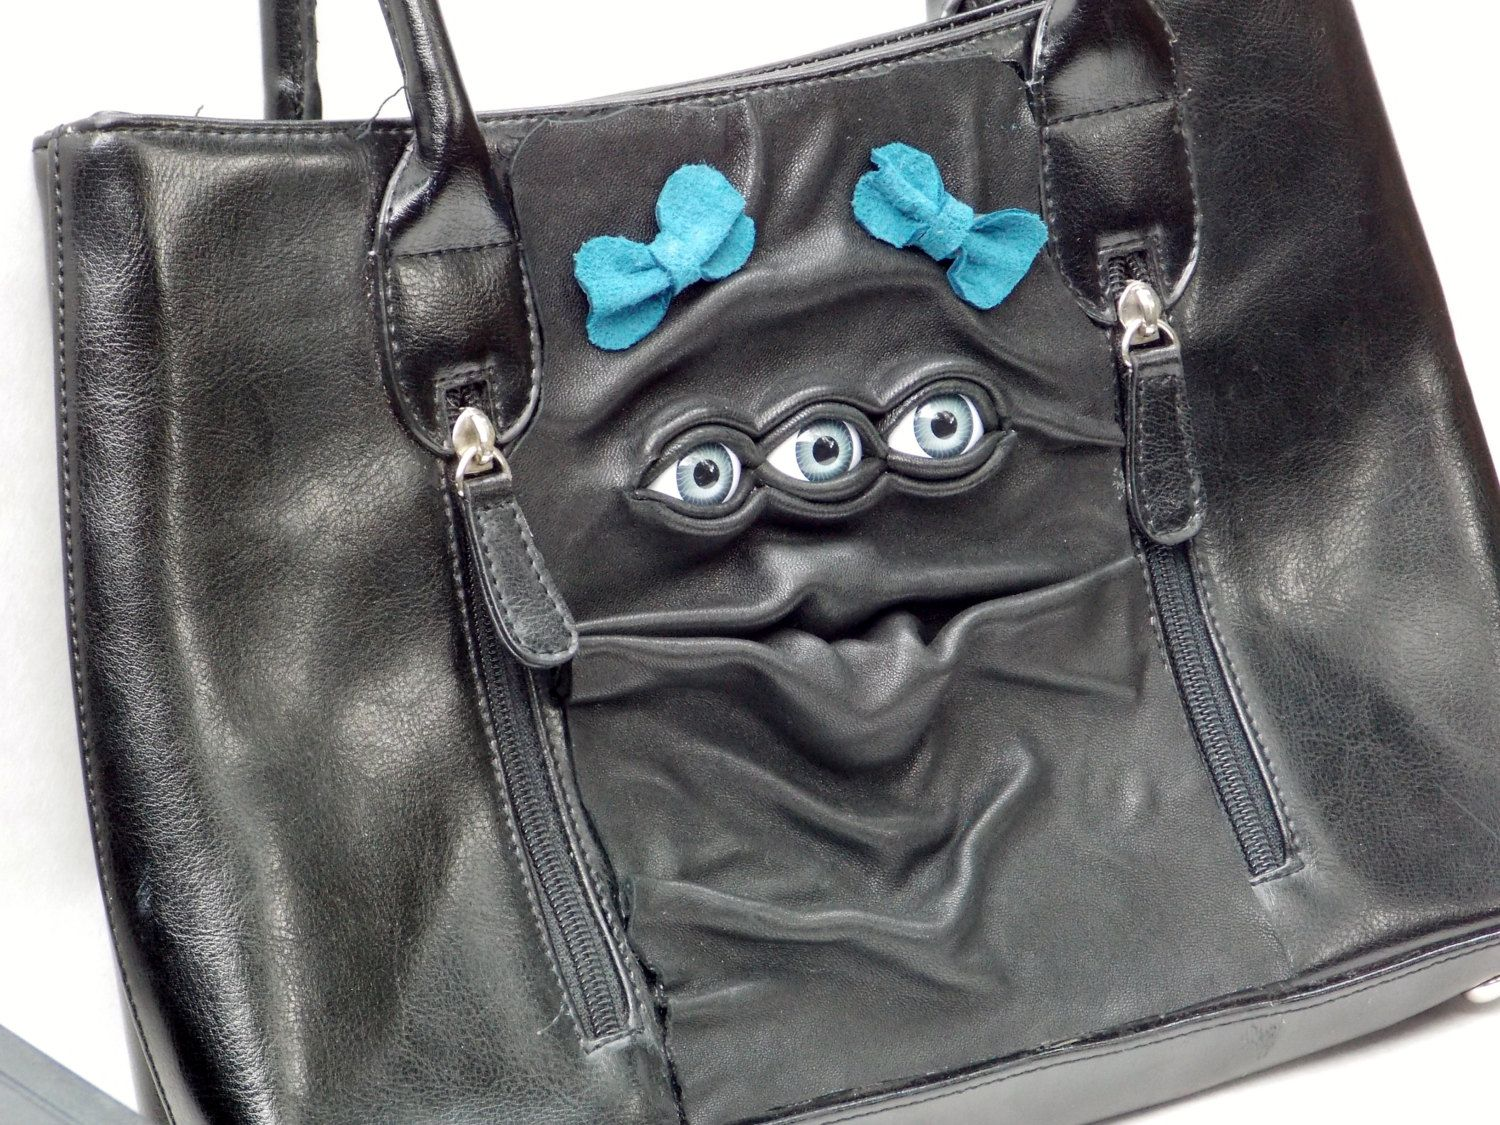 Leather Purse Black Handbag Pocketbook with Eyes by pippenwycks, $75.00